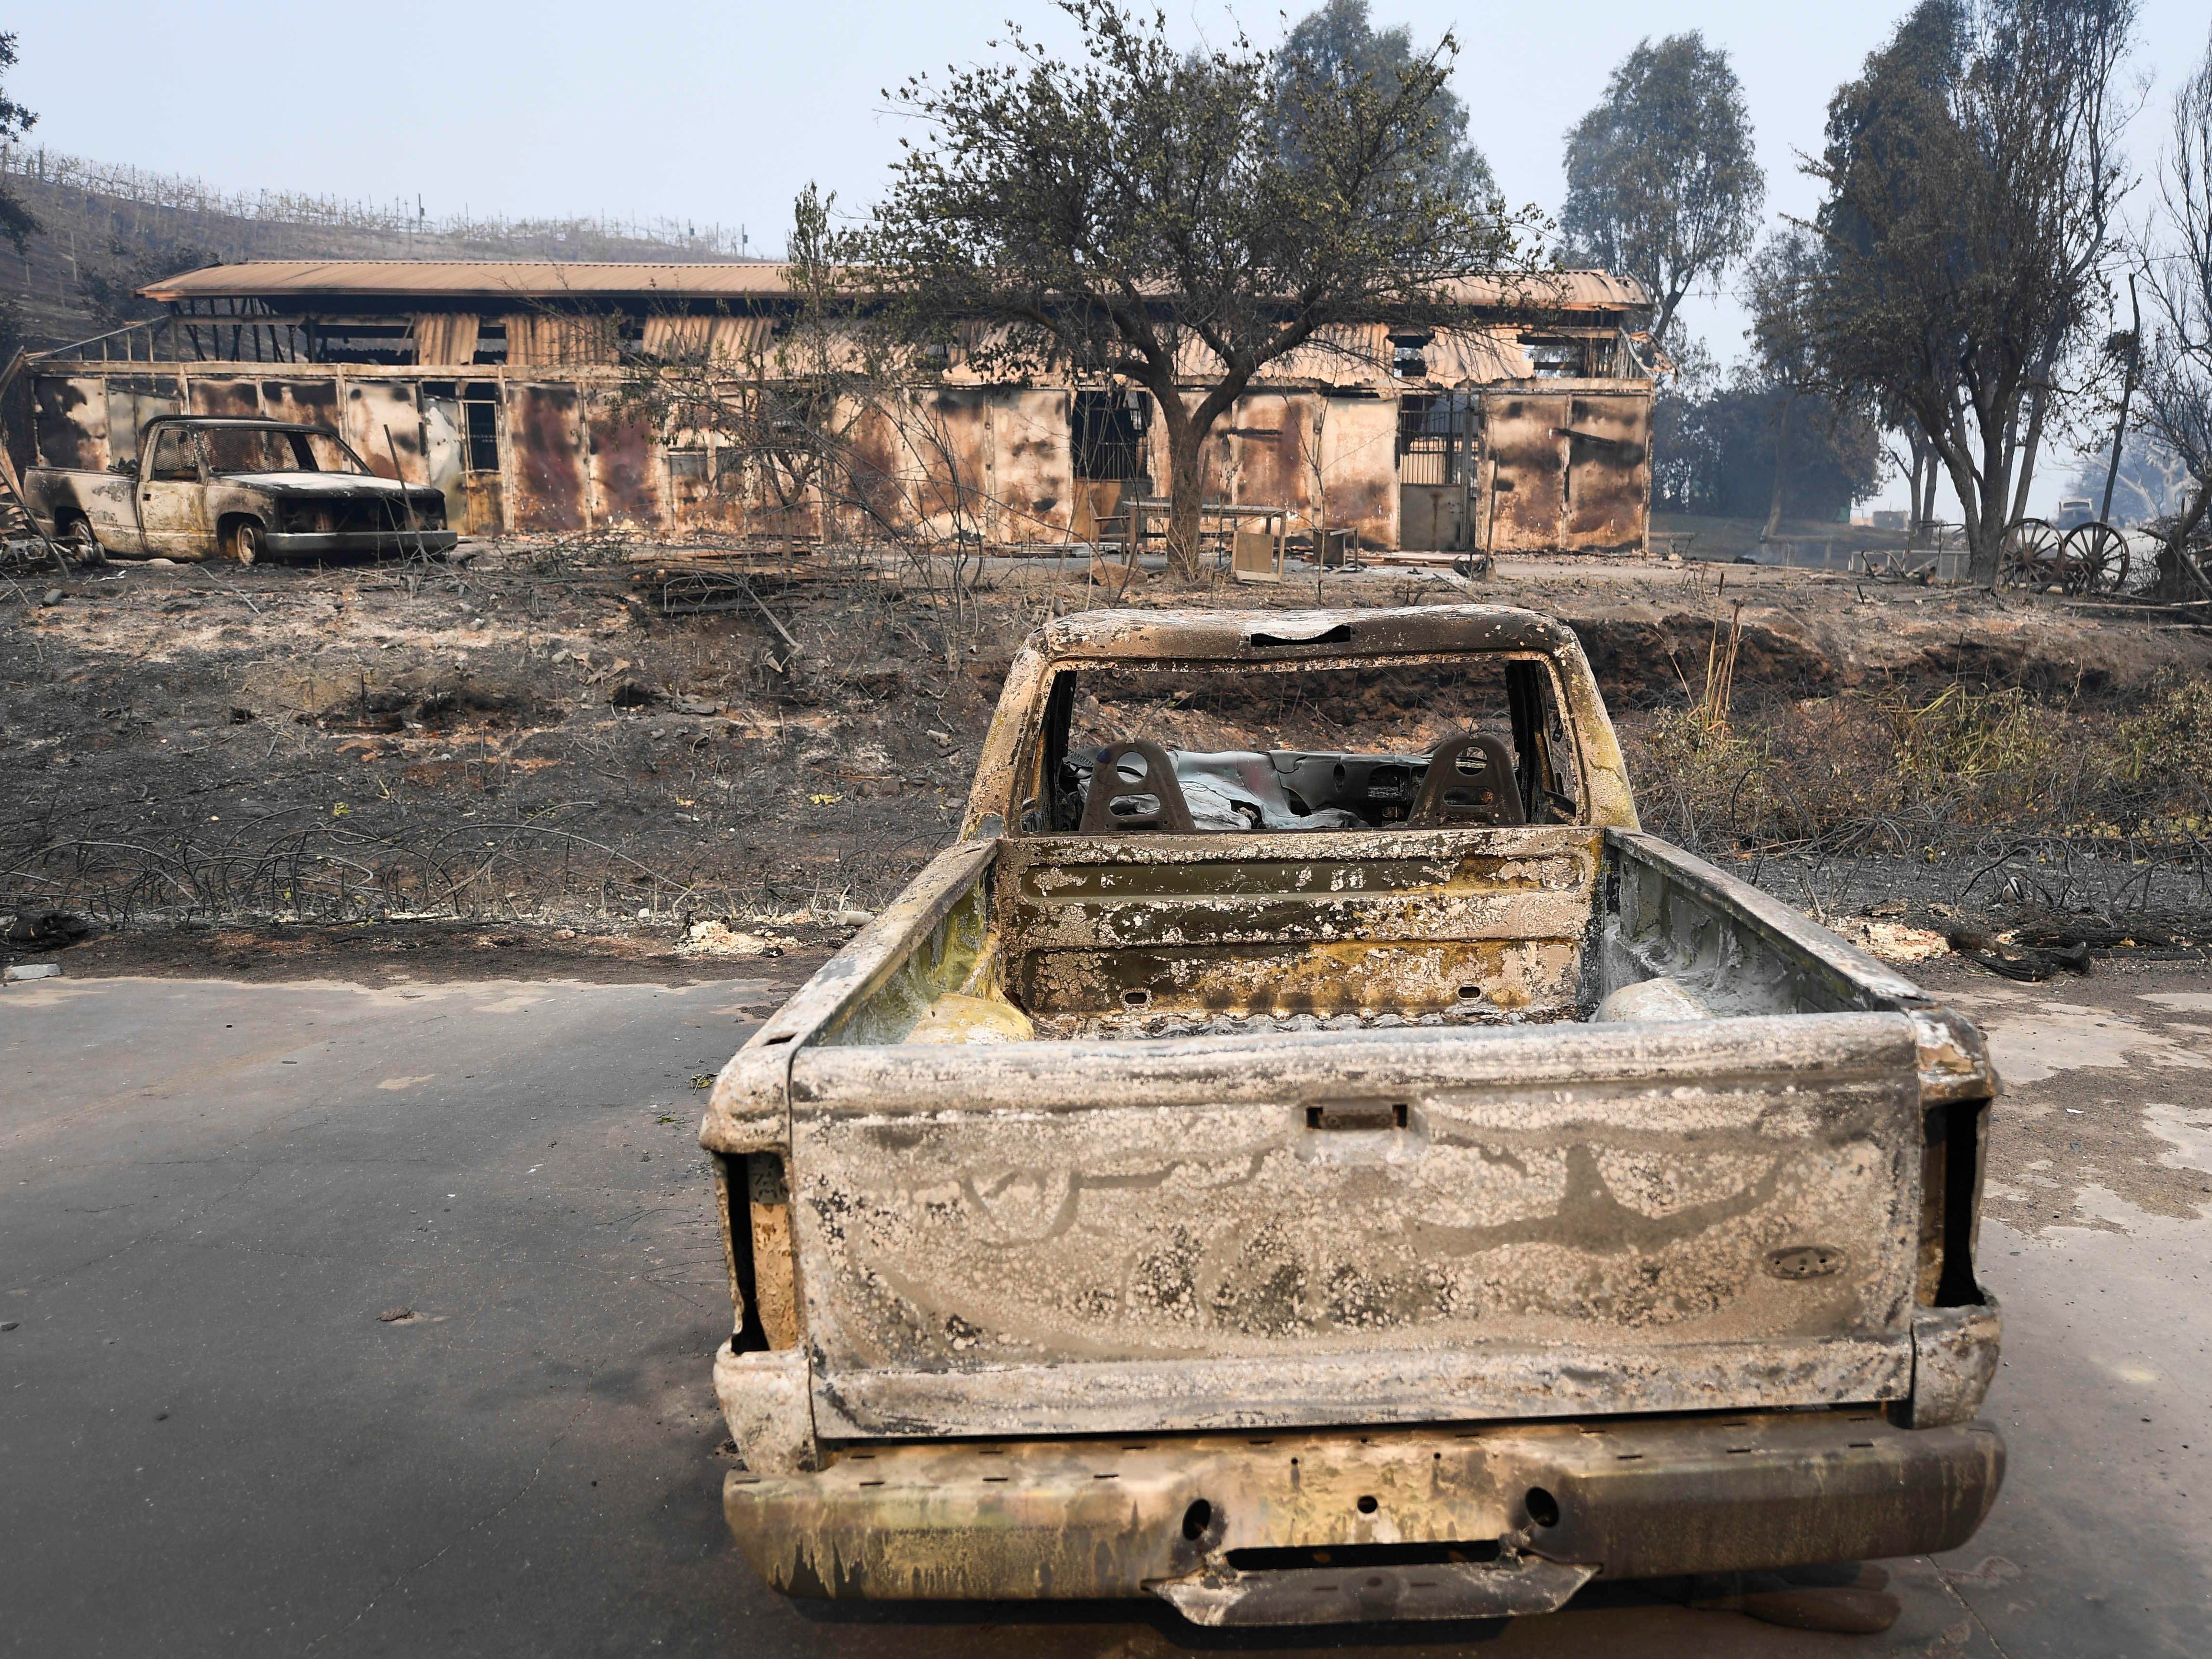 Burned out trucks and a building on the Saddlerock Ranch property in Malibu, Calif, in the aftermath of the Woosley Fire that as of Nov 10, 2018, reportedly consumed 70,000 acres.